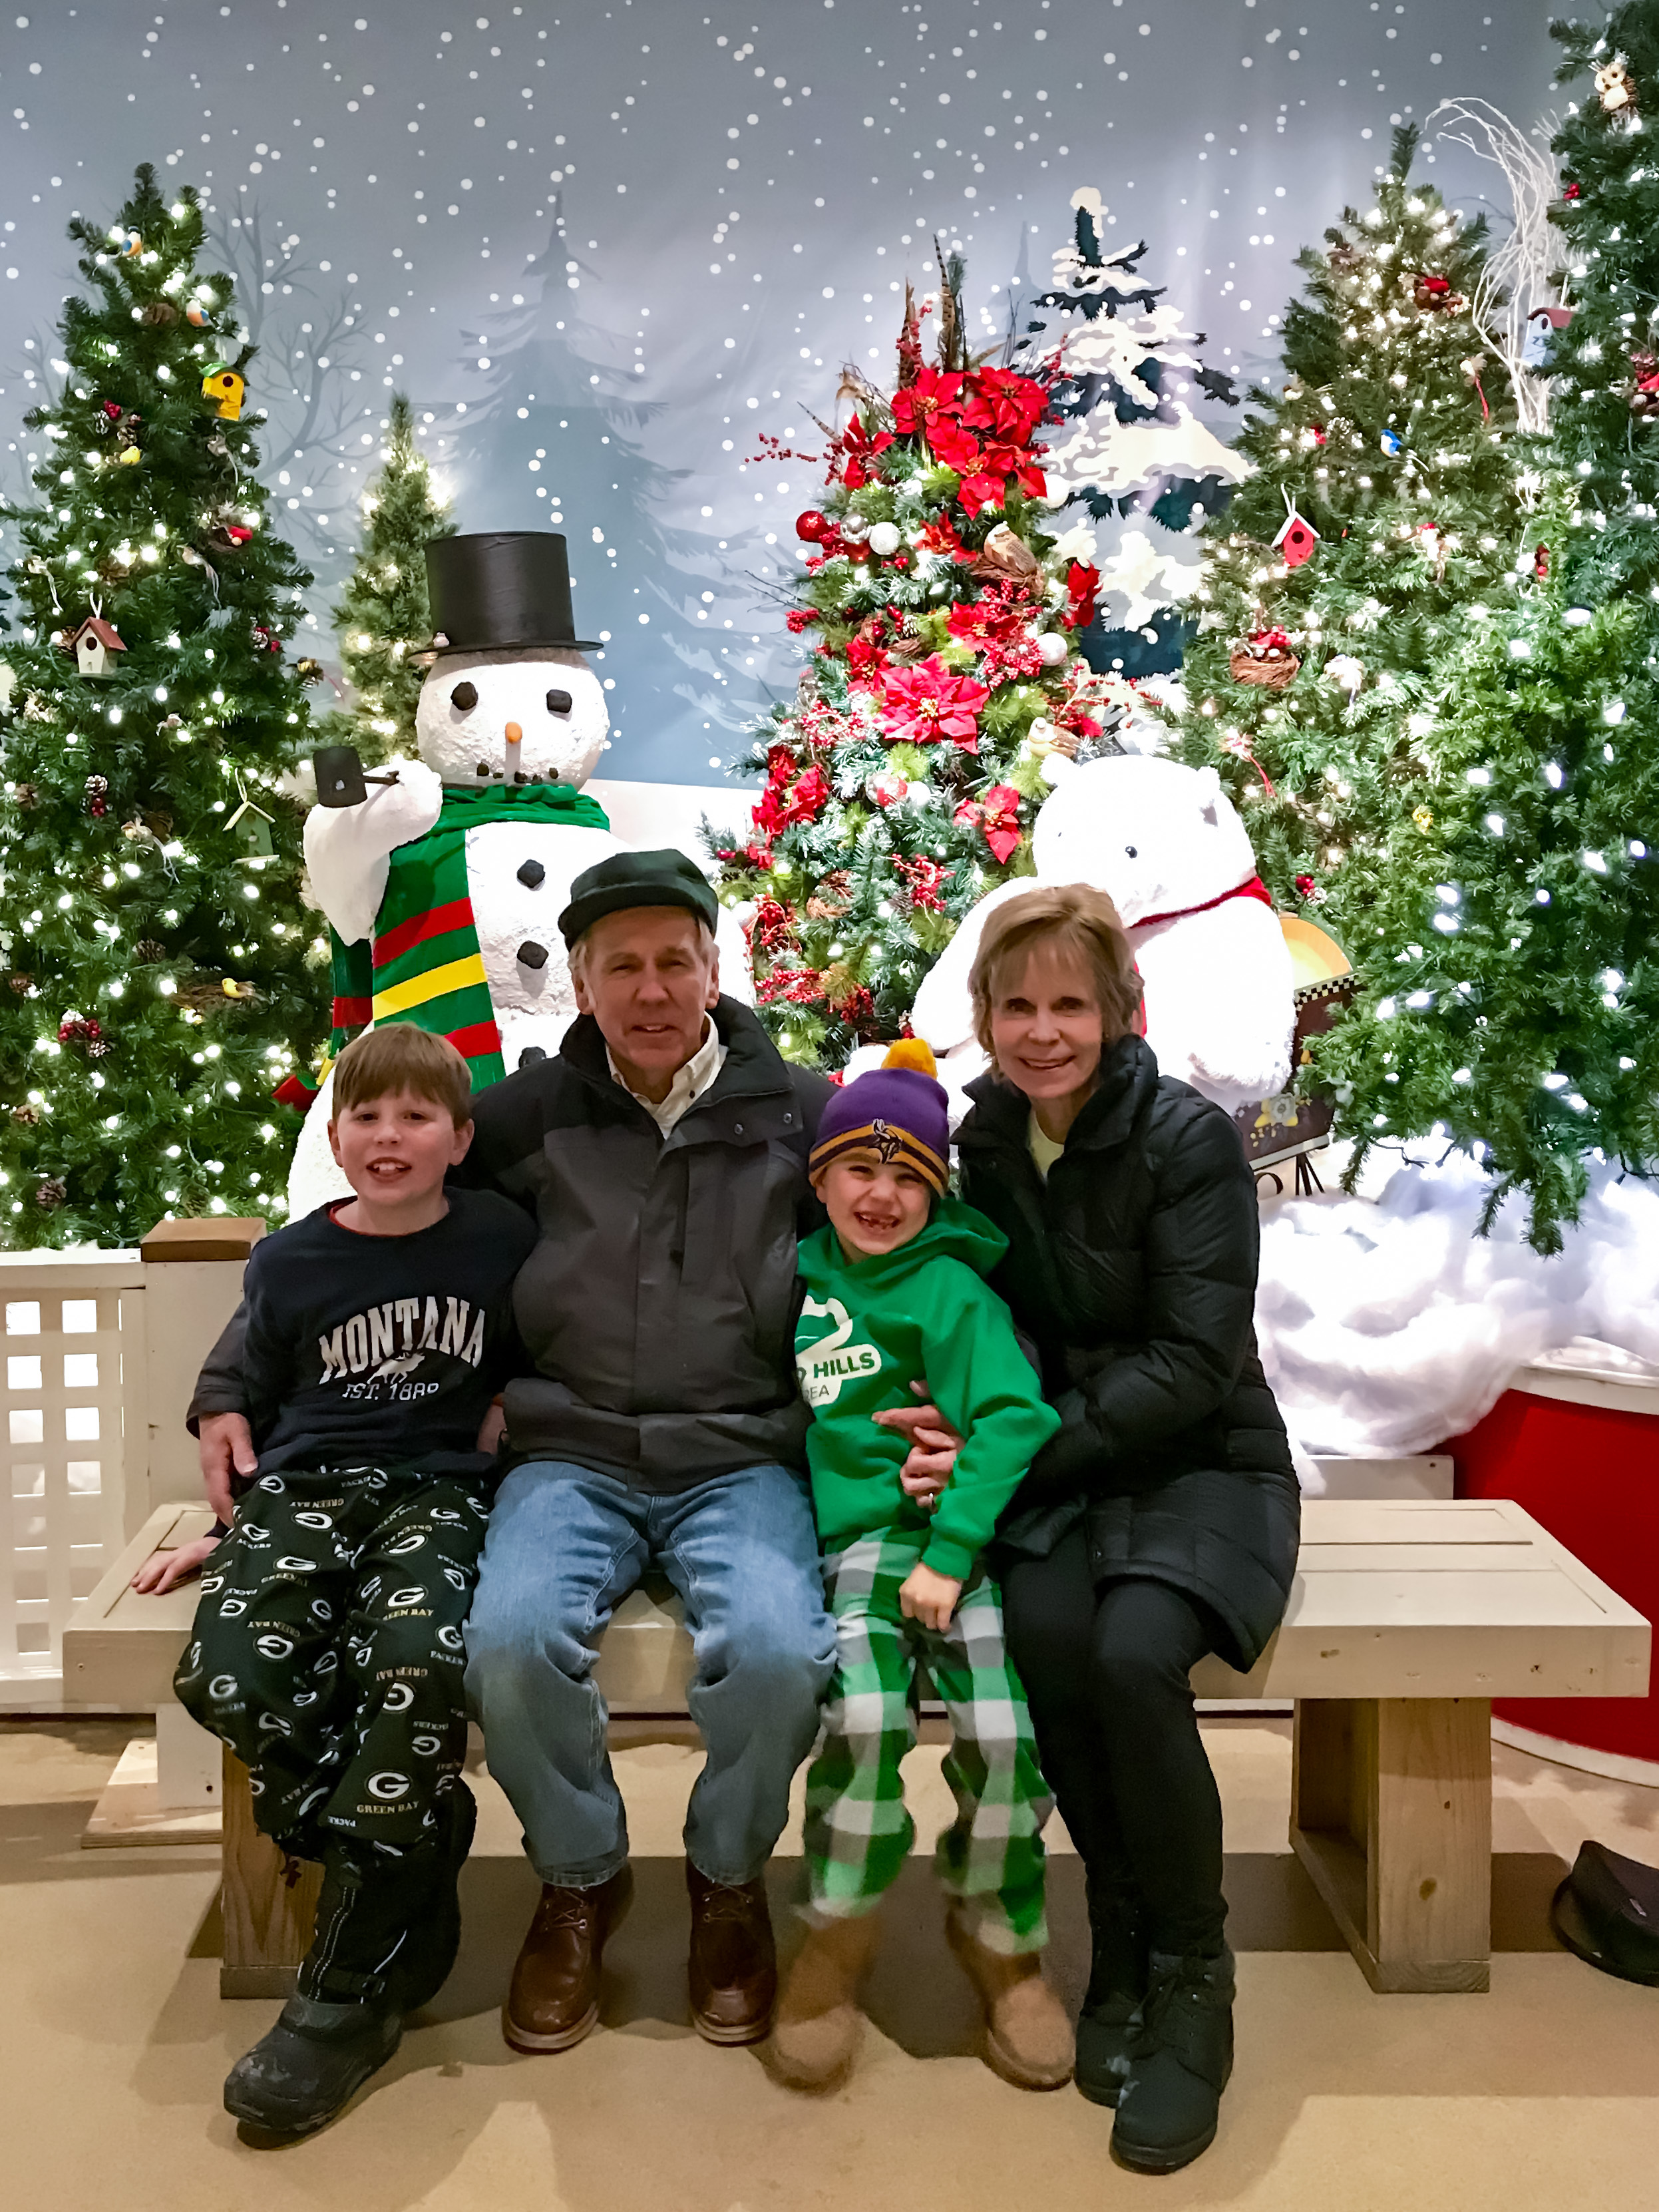 Christmas lights show in Oconomowoc Wisconsin with Grandma and Grandpa